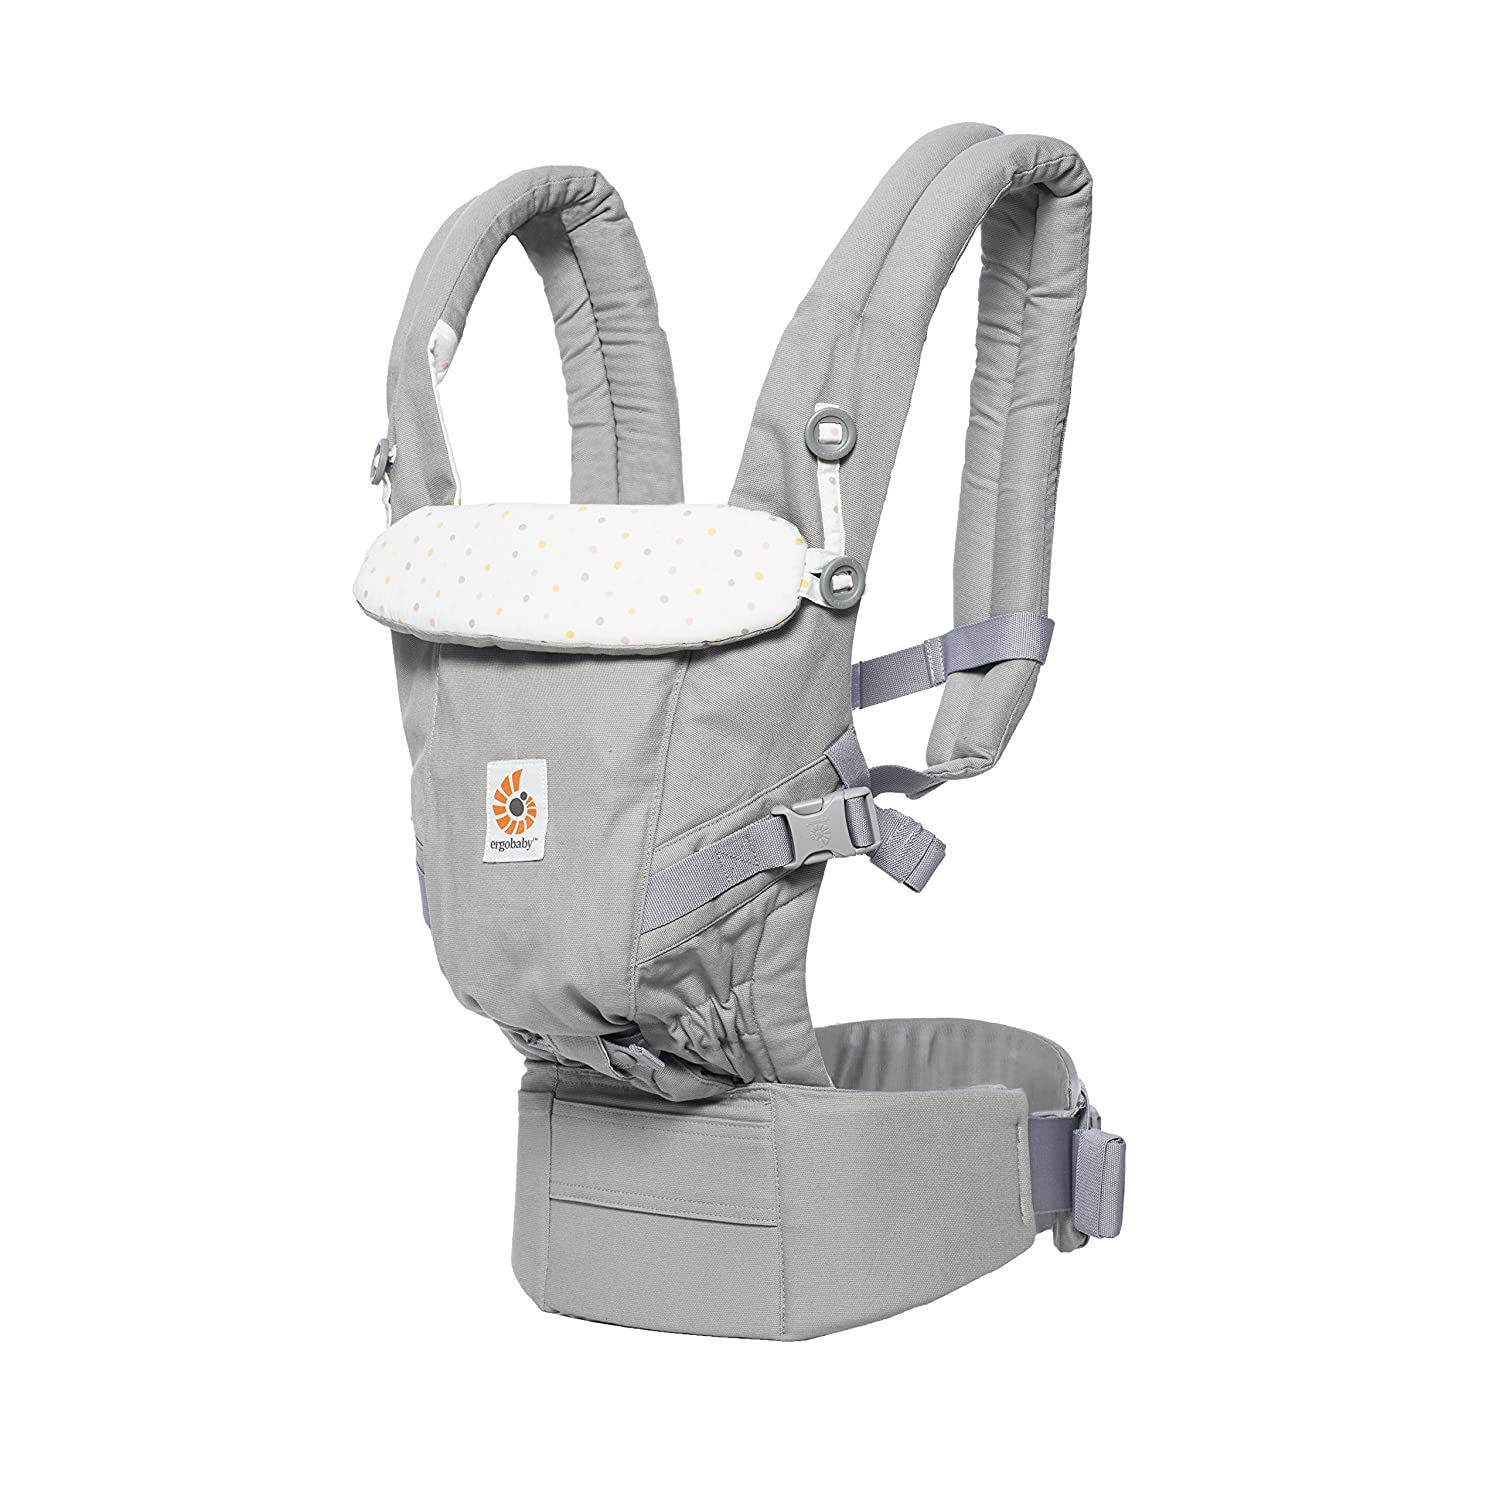 Amazon.com: Ergobaby Original Adapt - Confeti: Baby